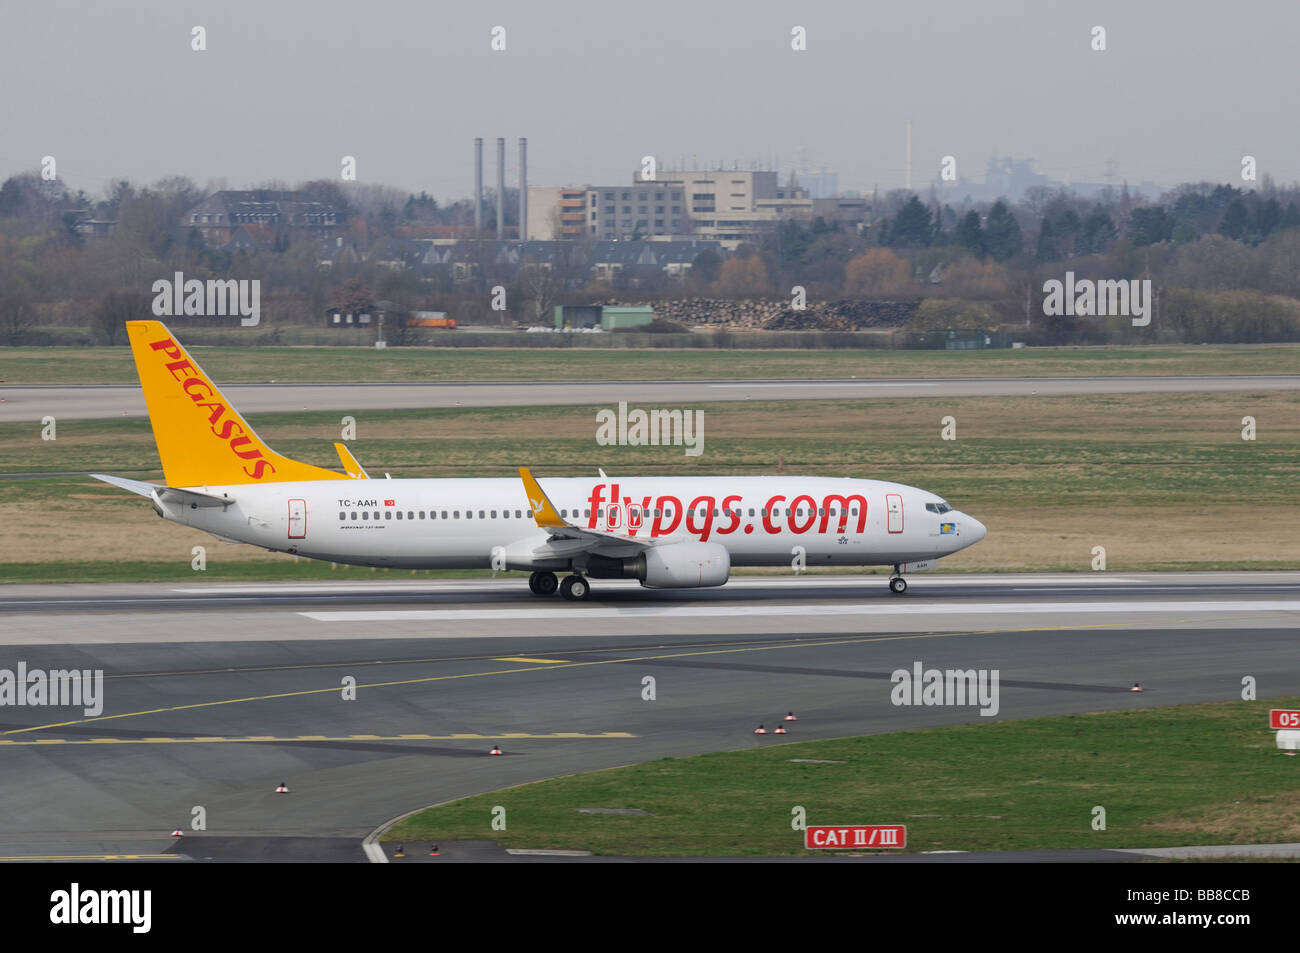 Pegasus Boeing 737-800 sur la piste, flypgs.com, compagnie turque, l'Aéroport International de Düsseldorf, Photo Stock